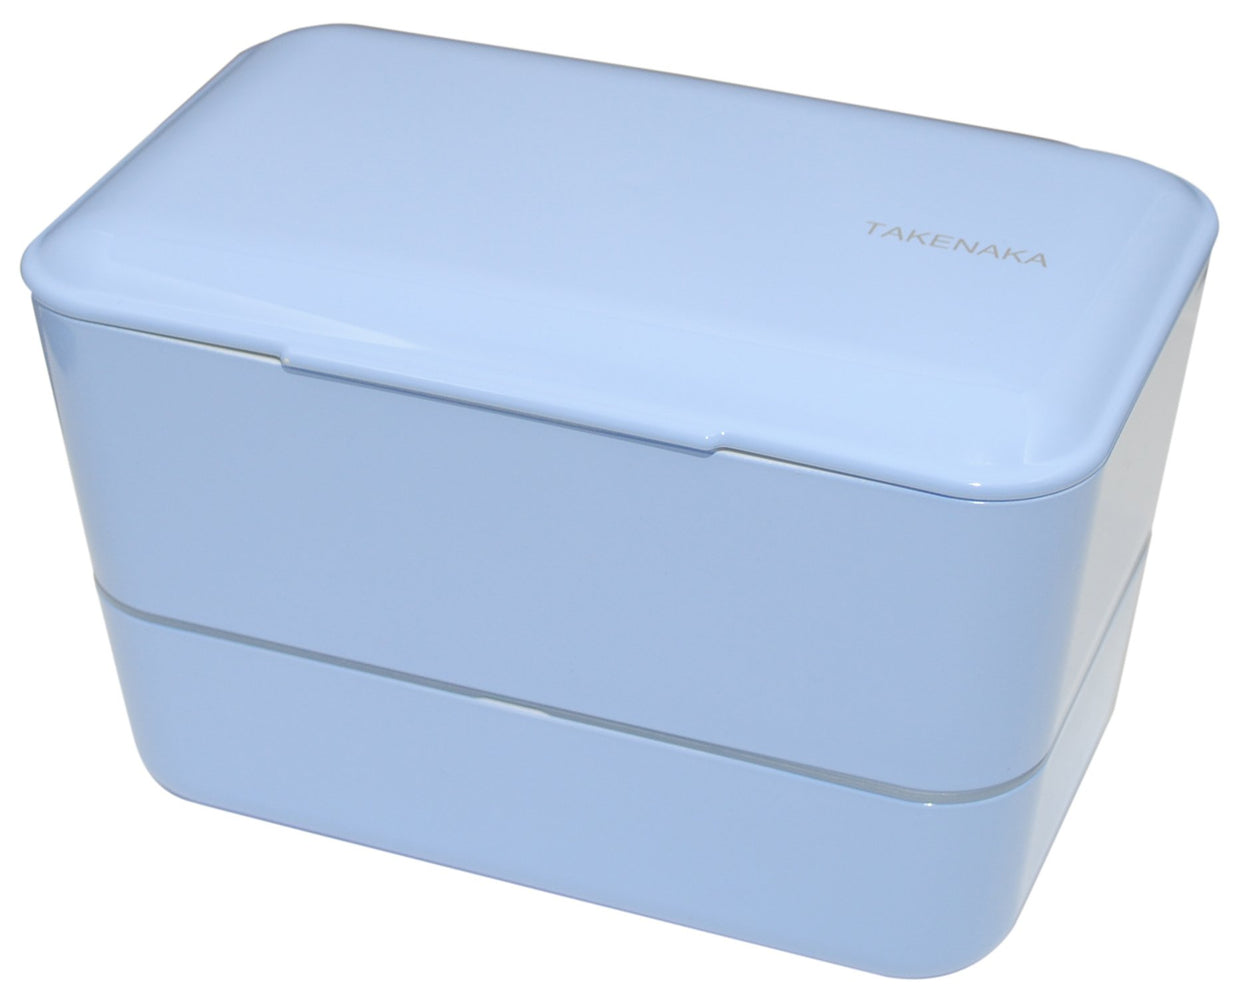 Expanded Double Bento Box | Serenity Blue by Takenaka - Bento&con the Bento Boxes specialist from Kyoto